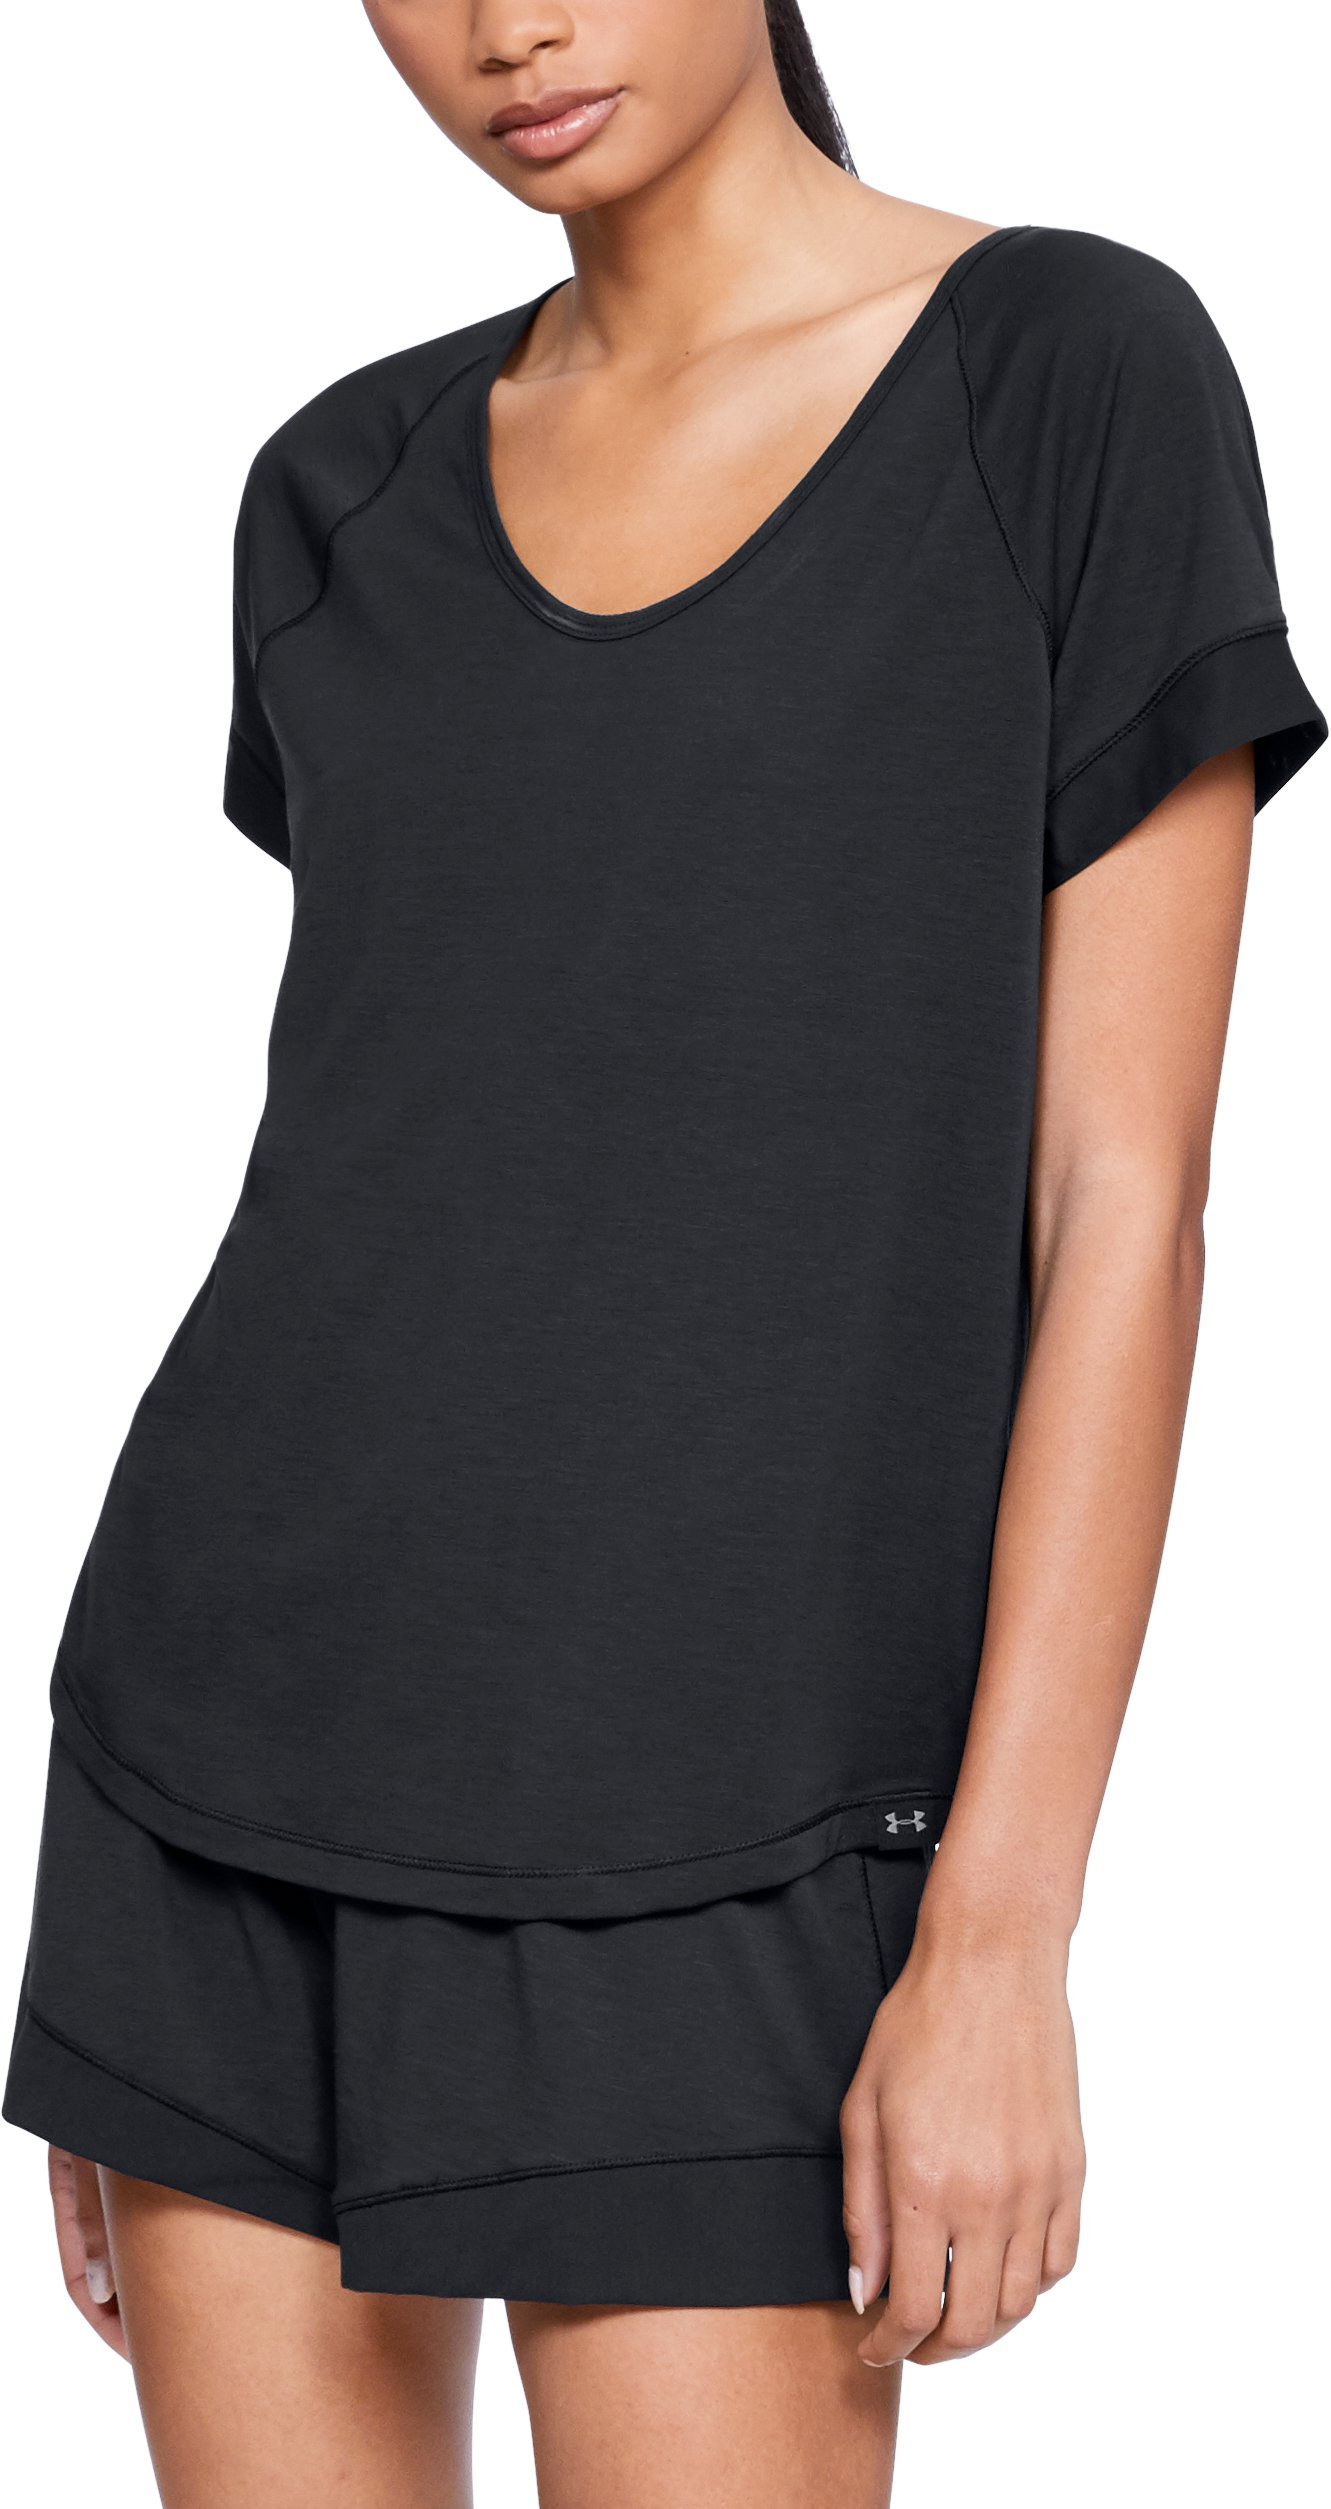 Women's Athlete Recovery Sleepwear Short Sleeve, Black